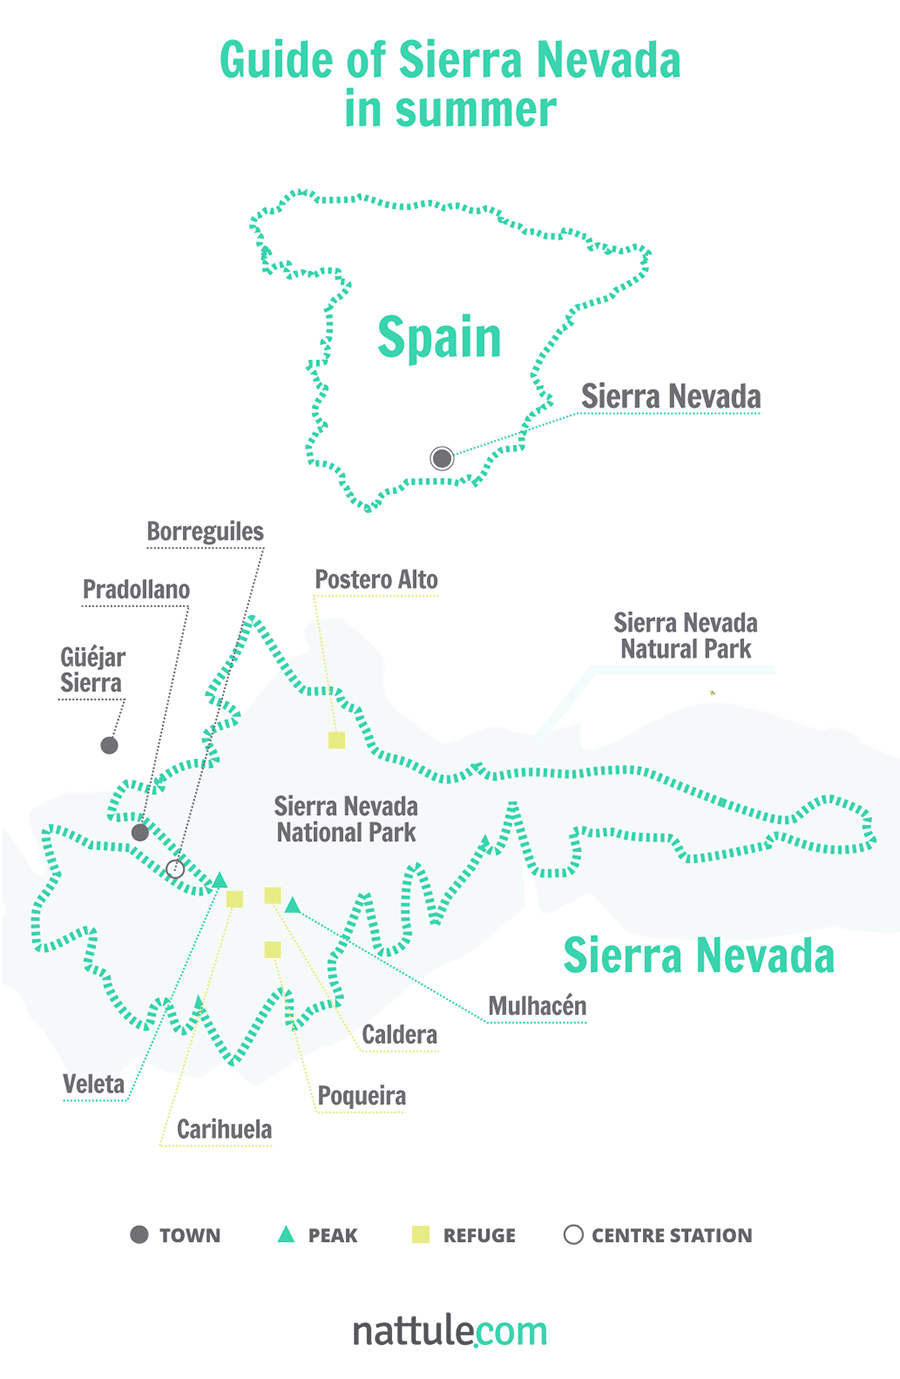 Guide of Sierra Nevada in summer